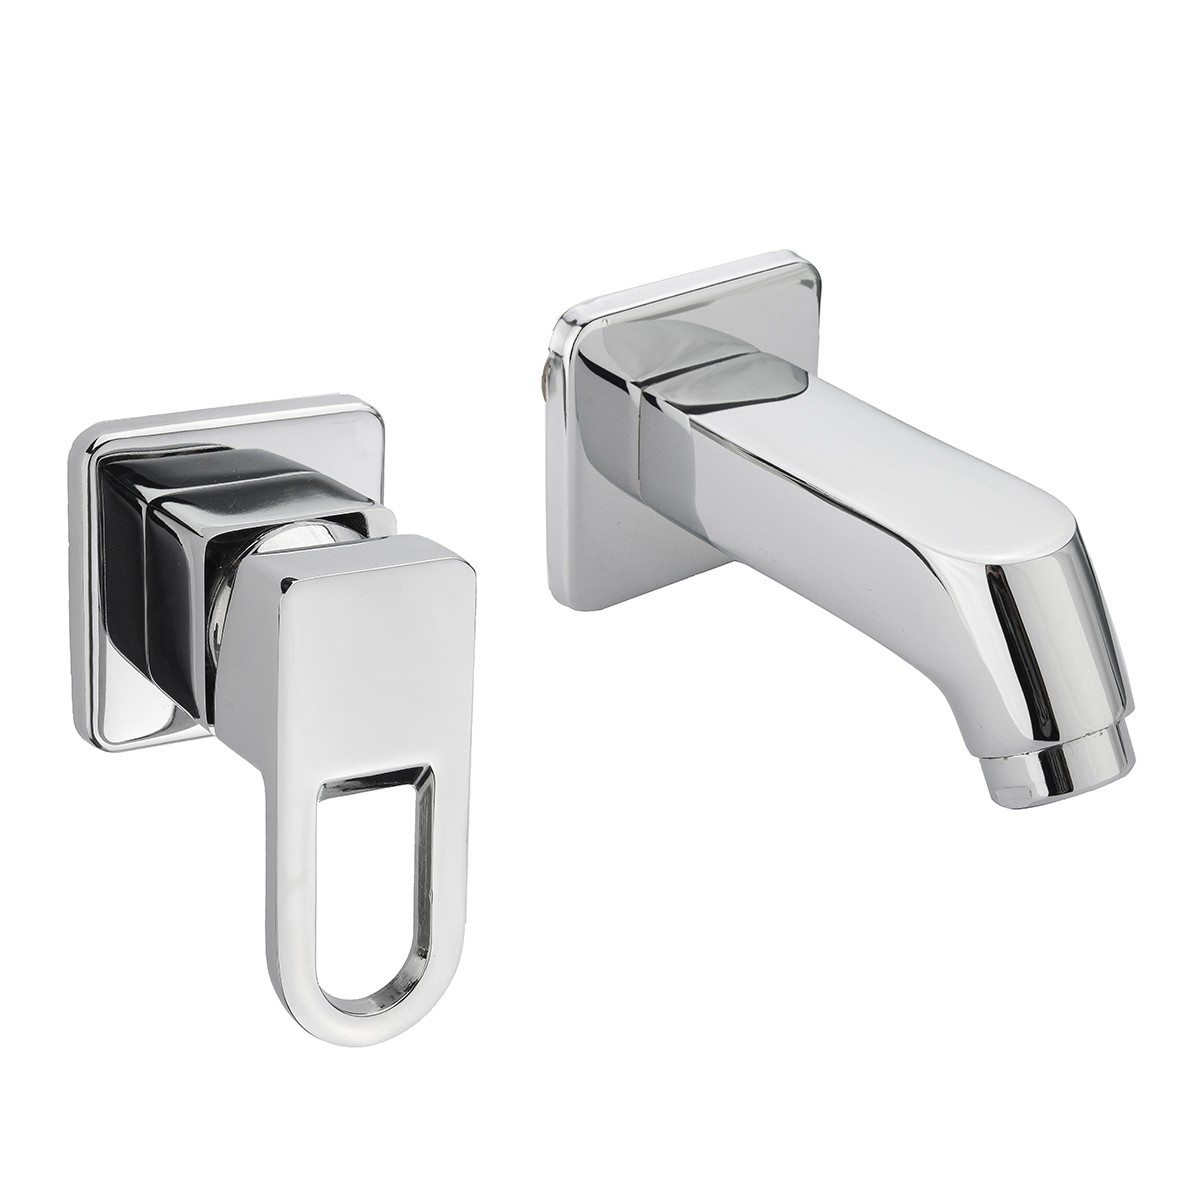 Modern Hot Cold Water Mixer Tap Wall Mounted Bathroom K